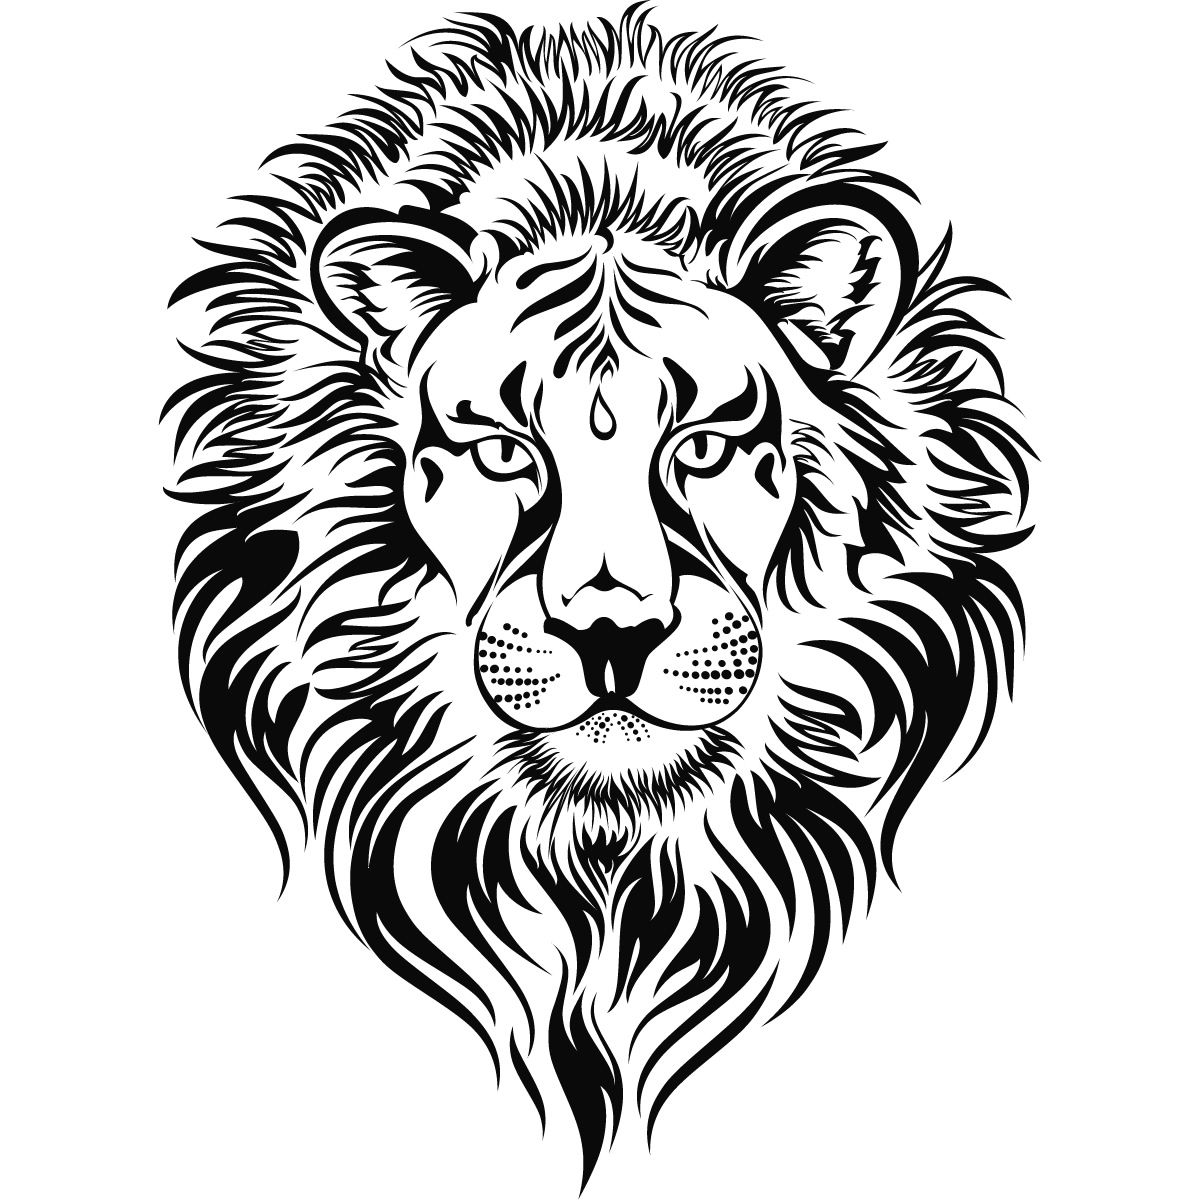 lion growling coloring pages - photo#28